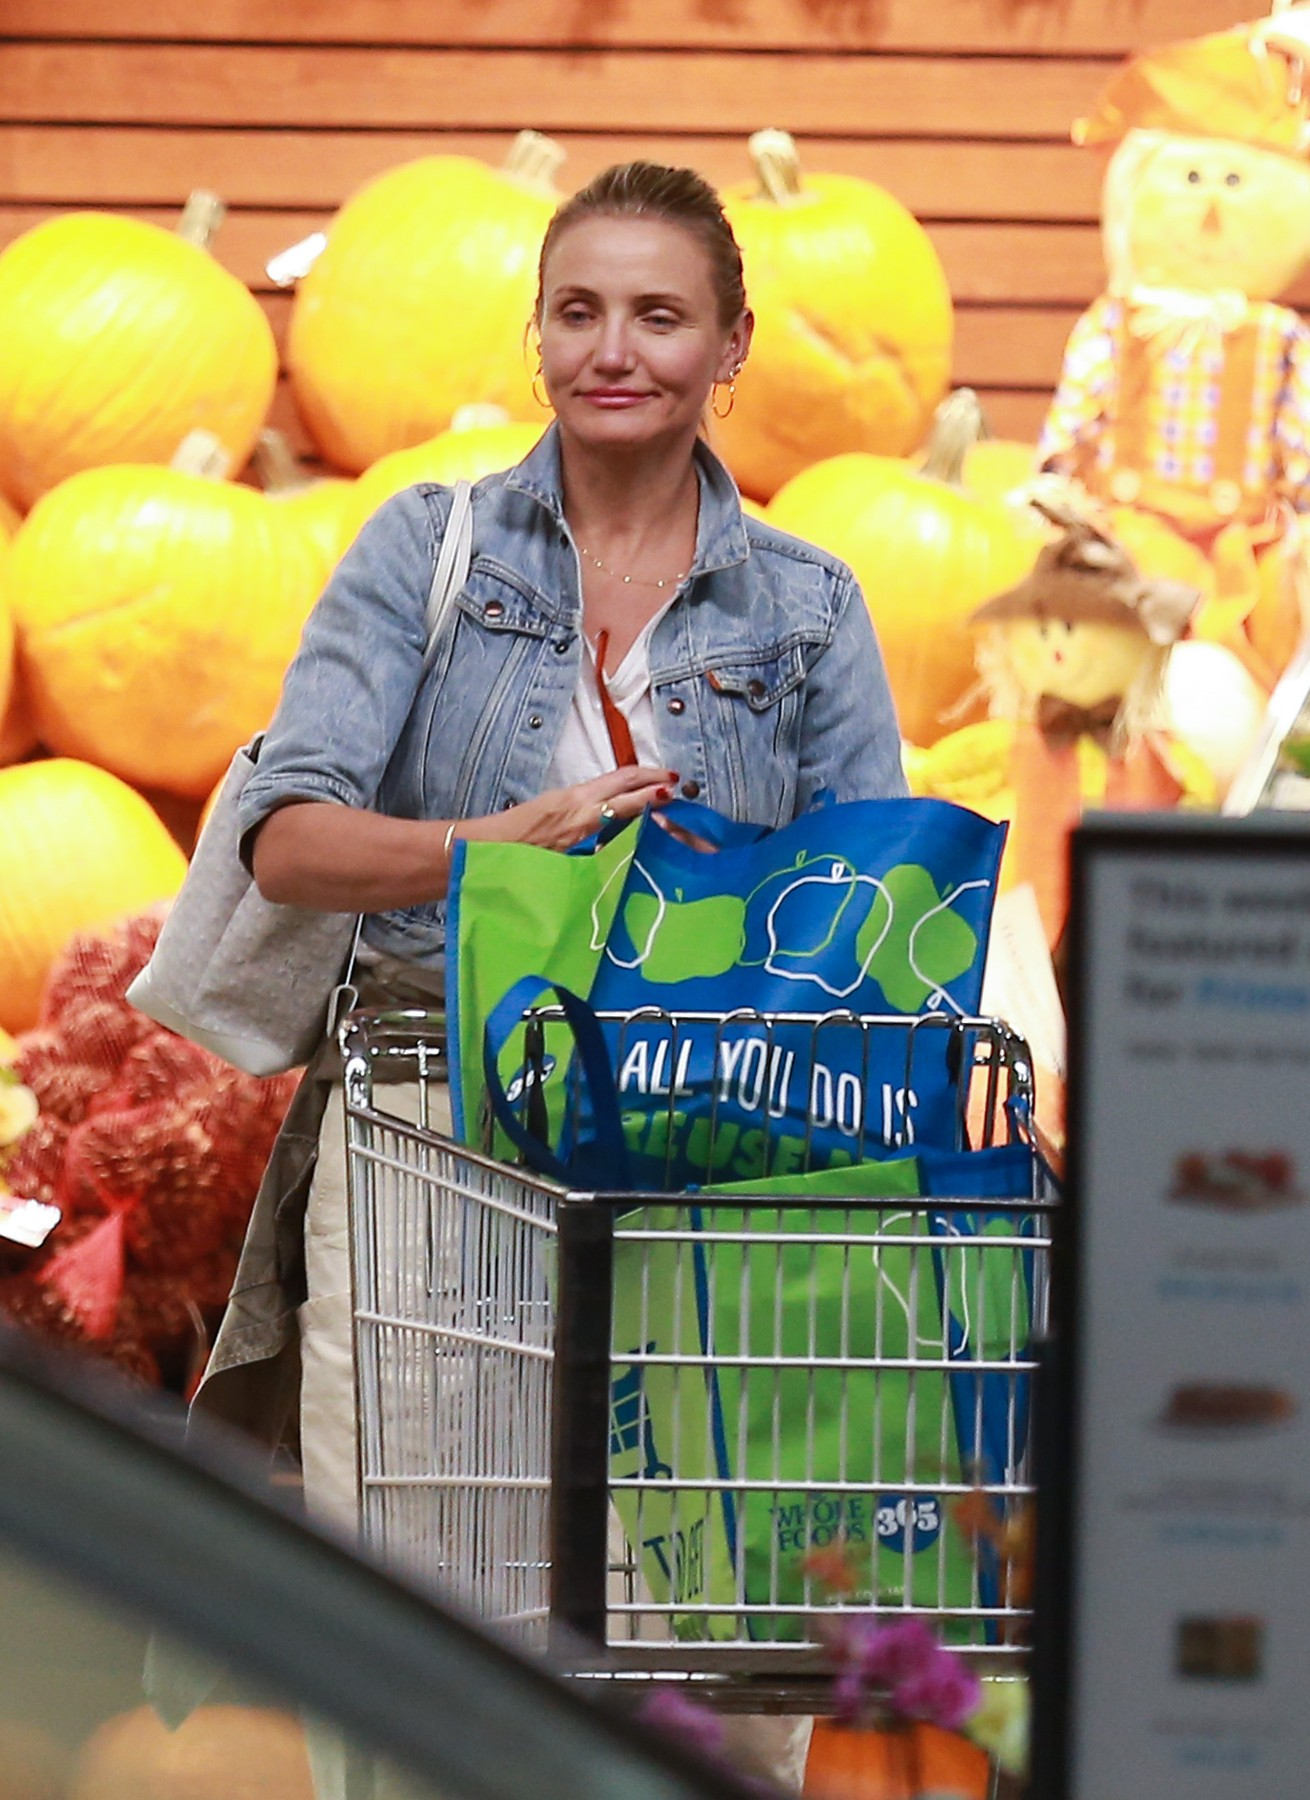 10/11/2019 EXCLUSIVE: Cameron Diaz is Spotted Shopping at Whole Foods in Beverly Hills, California. The 47 year old actress wore a white t-shirt, denim jacket, baggy pants, sandals, and carried a white Goyard tote bag.     **VIDEO AVAILABLE**, Image: 476266687, License: Rights-managed, Restrictions: Exclusive NO usage without agreed price and terms. Please contact sales@theimagedirect.com, Model Release: no, Credit line: TheImageDirect.com / The Image Direct / Profimedia